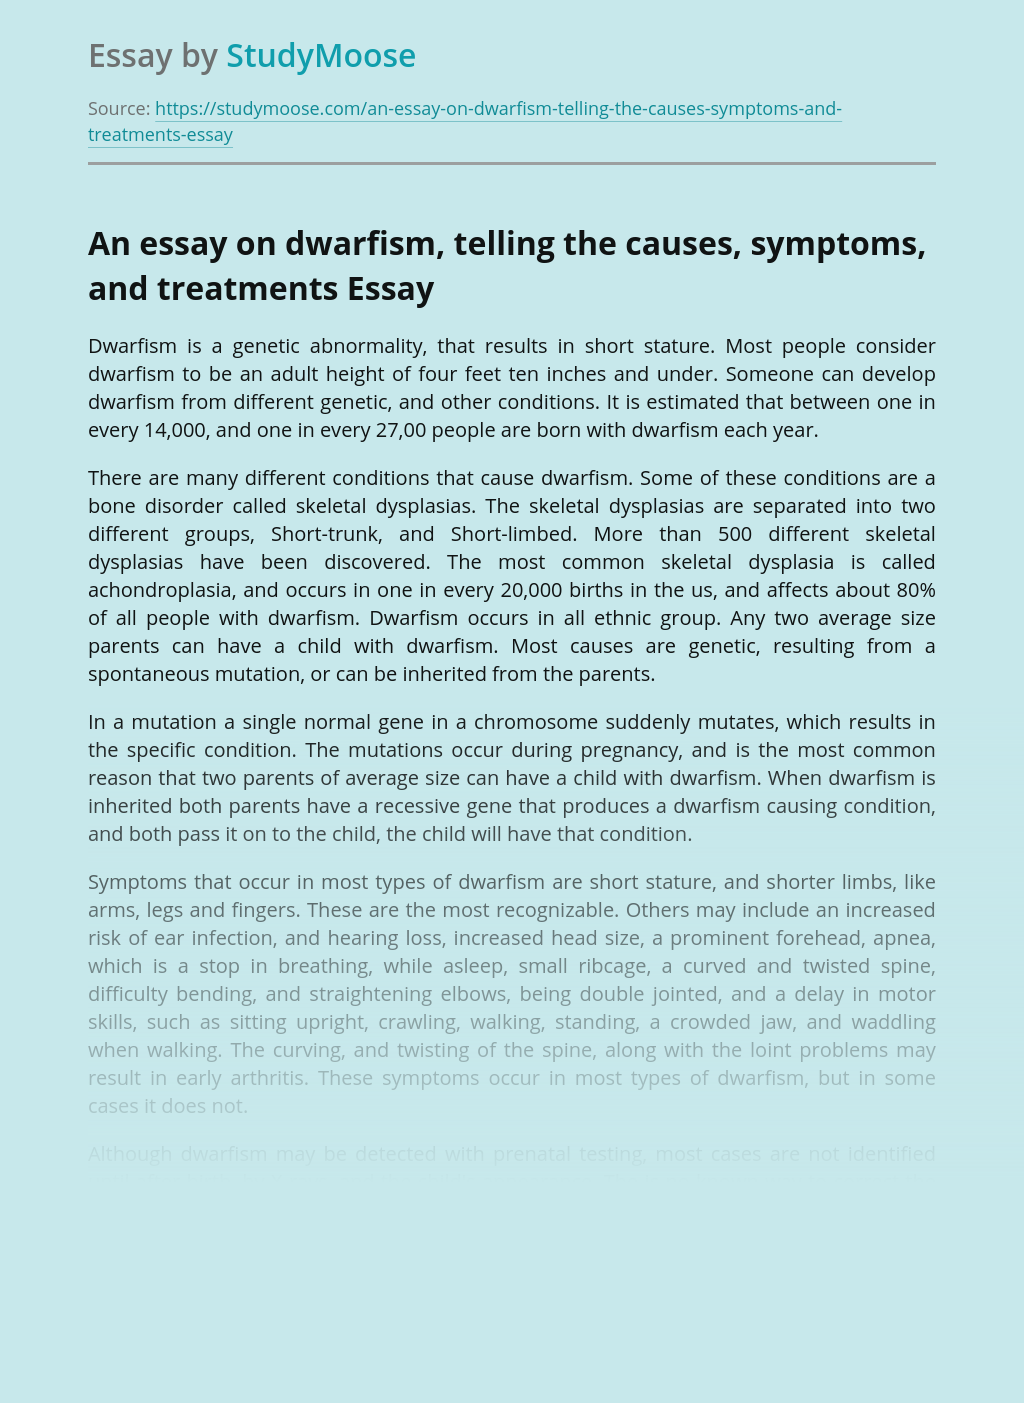 An essay on dwarfism, telling the causes, symptoms, and treatments